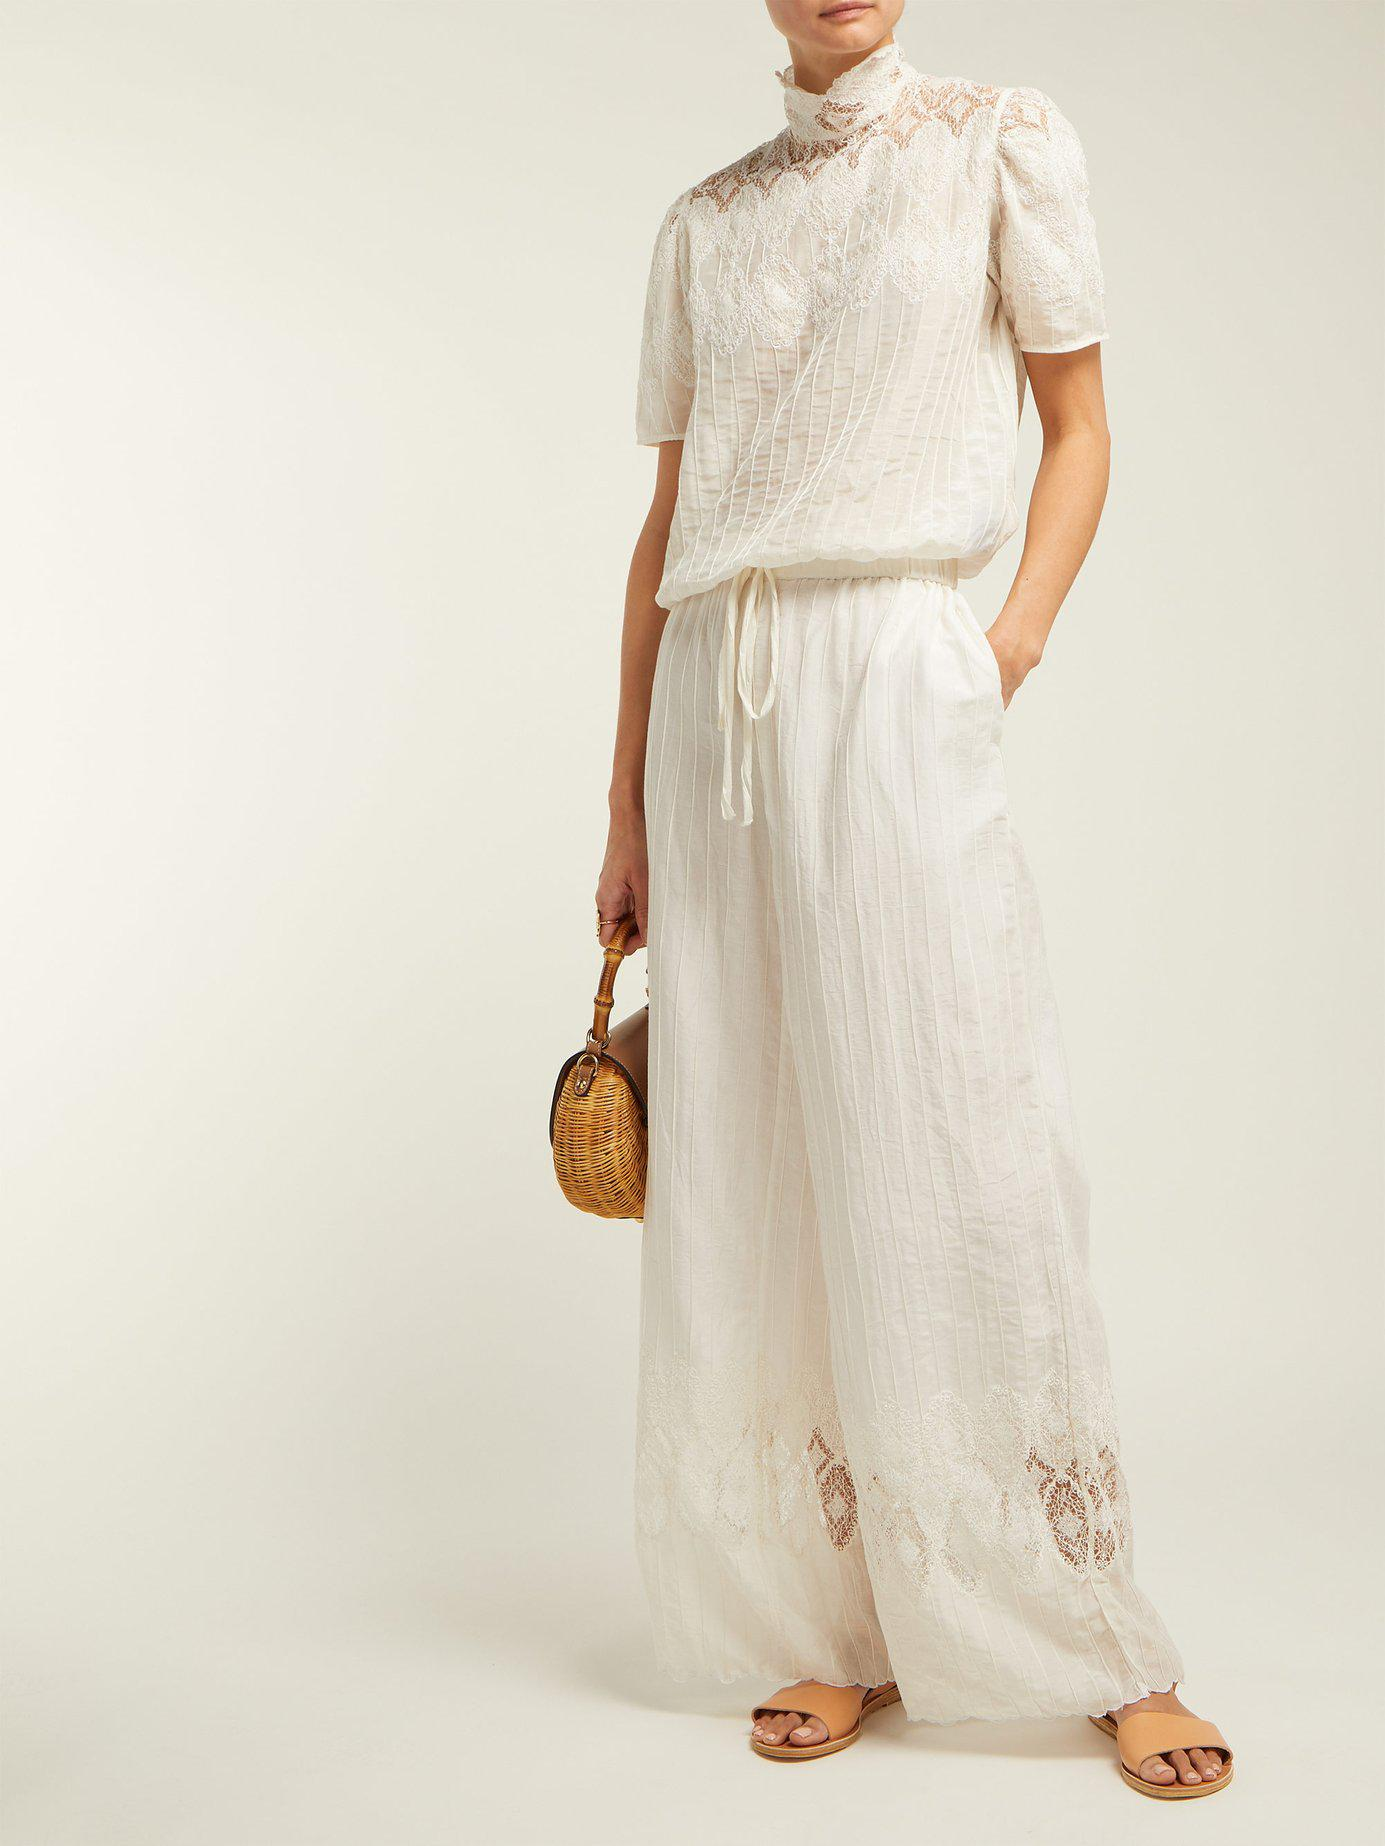 Lyst Thierry Colson Sabrina Lace Trimmed Cotton Blend Blouse In White Swing Sleeves View Fullscreen